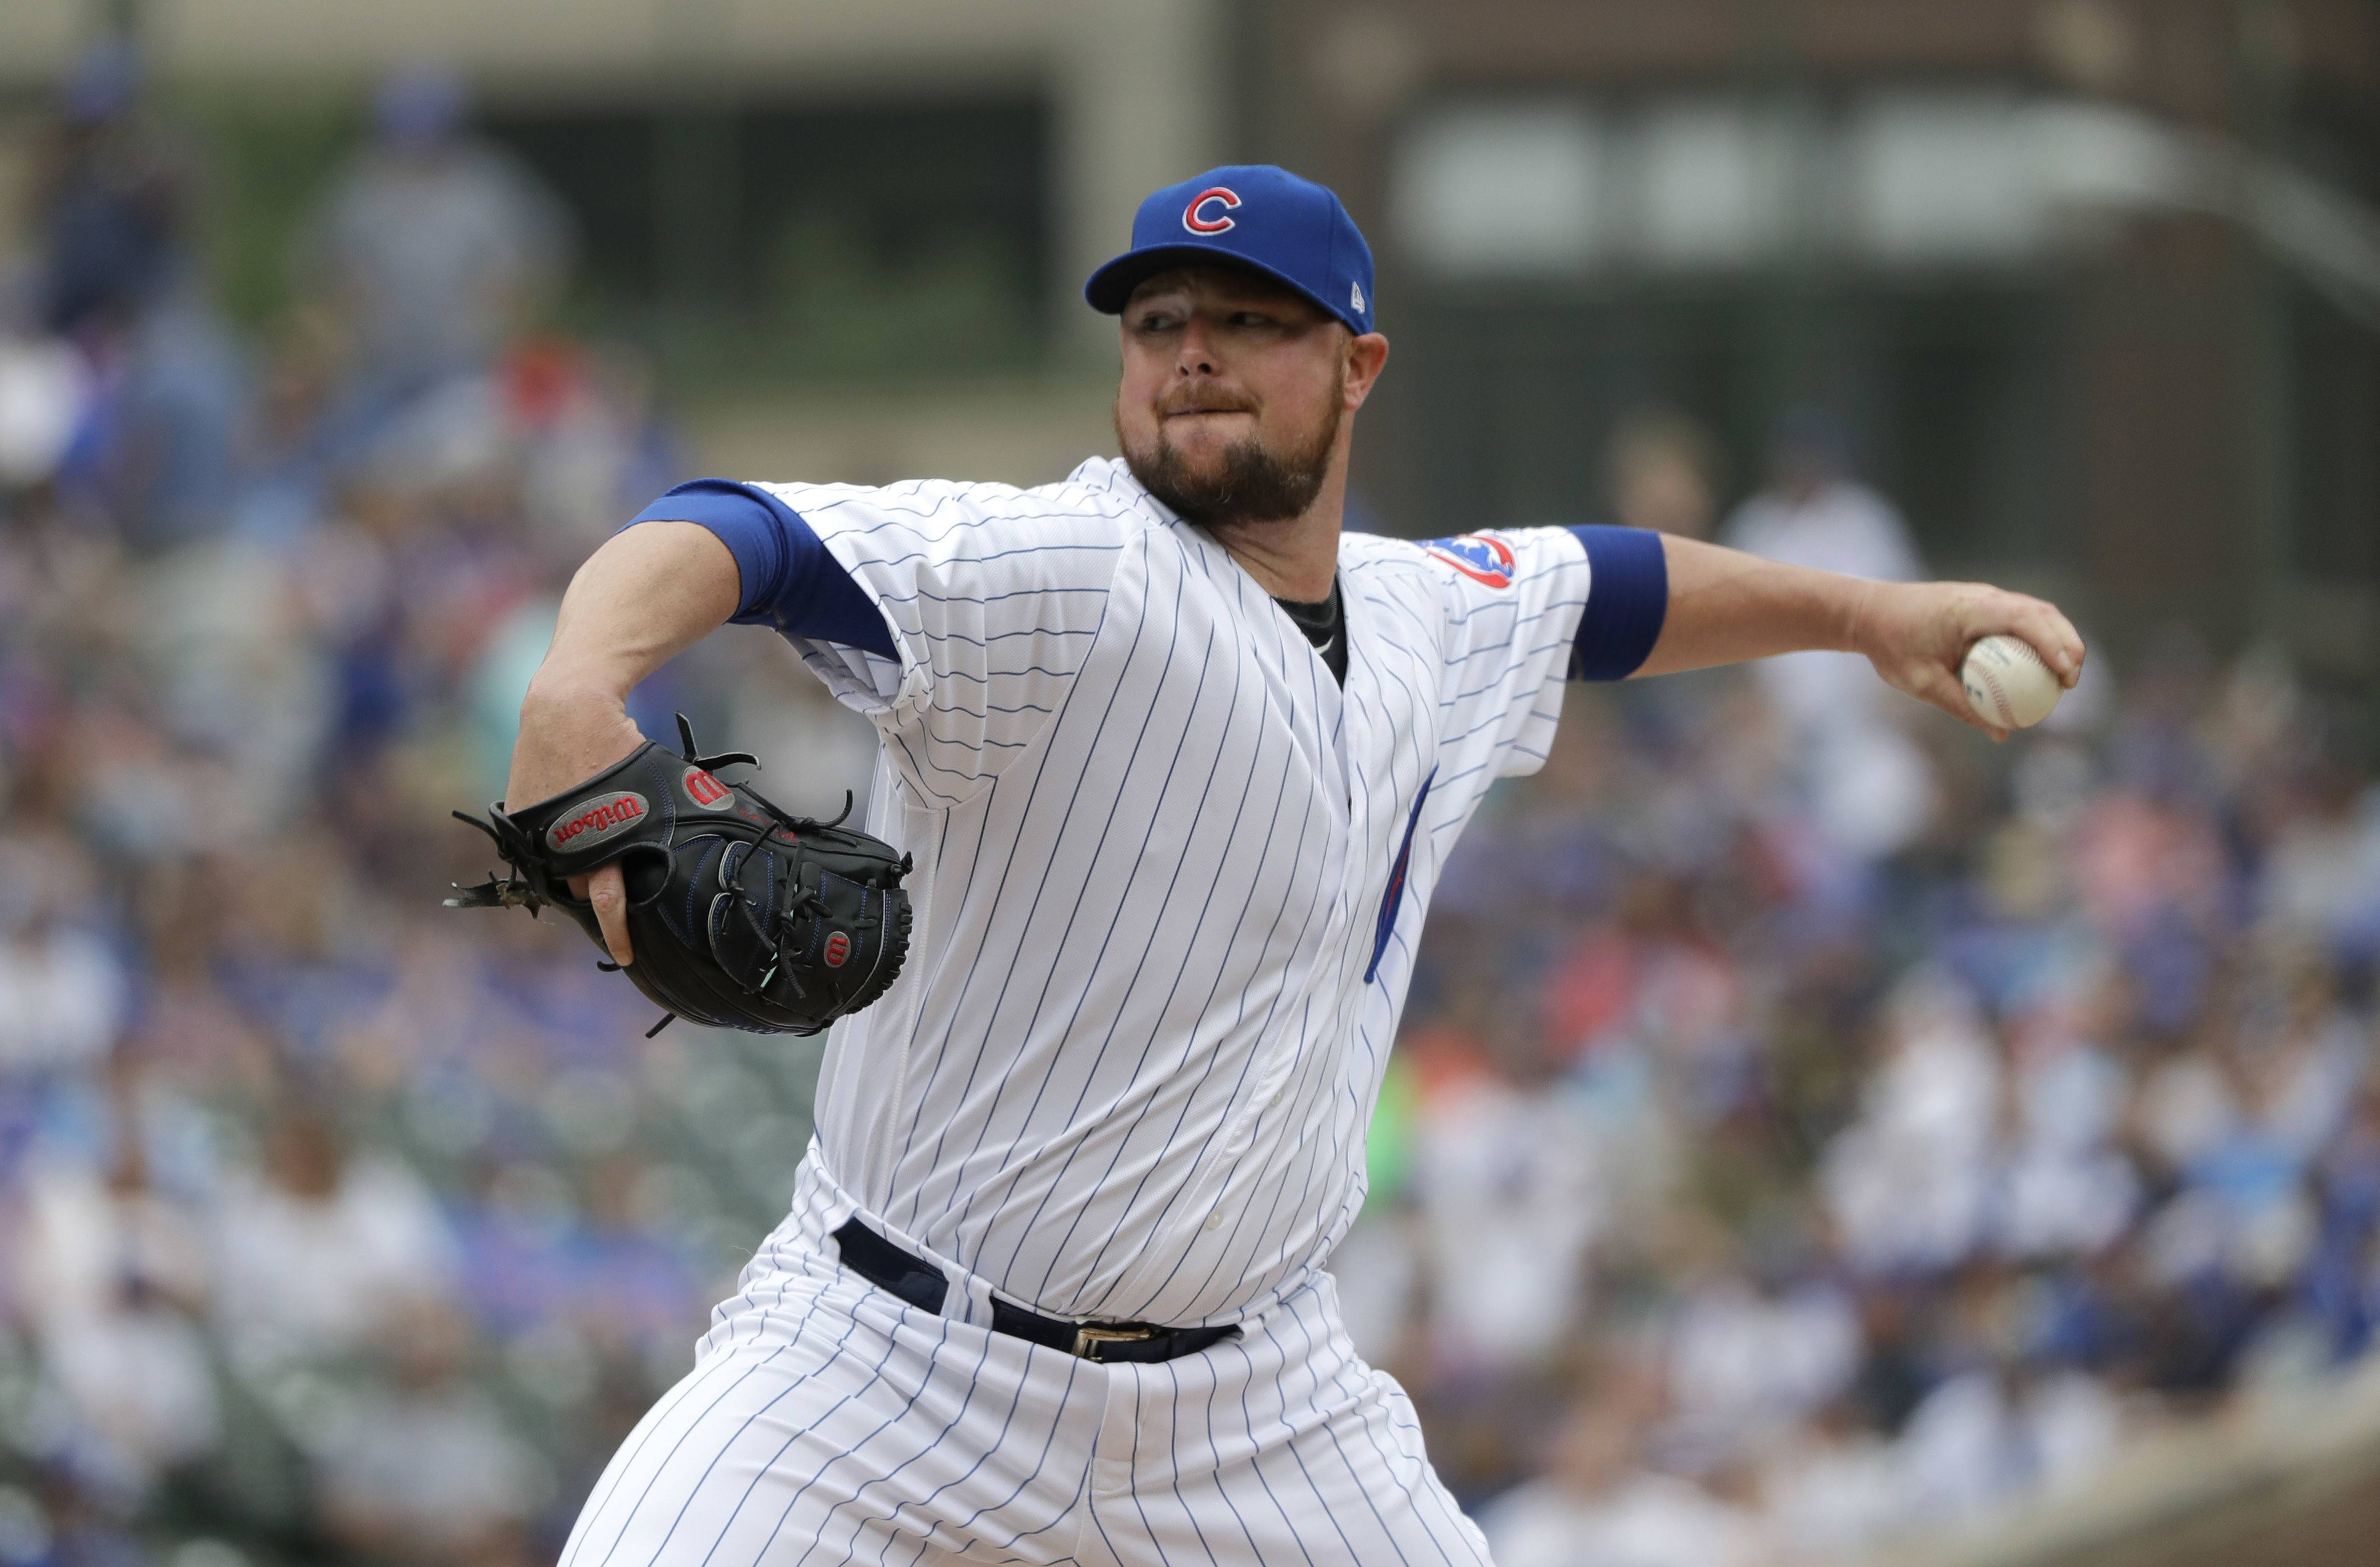 Chicago Cubs starting pitcher Jon Lester has been the star of the pitching staff through the first half of the season with a record of 12-2 and an ERA of 2.58. Lester was named an all-star for the fifth time in his career.